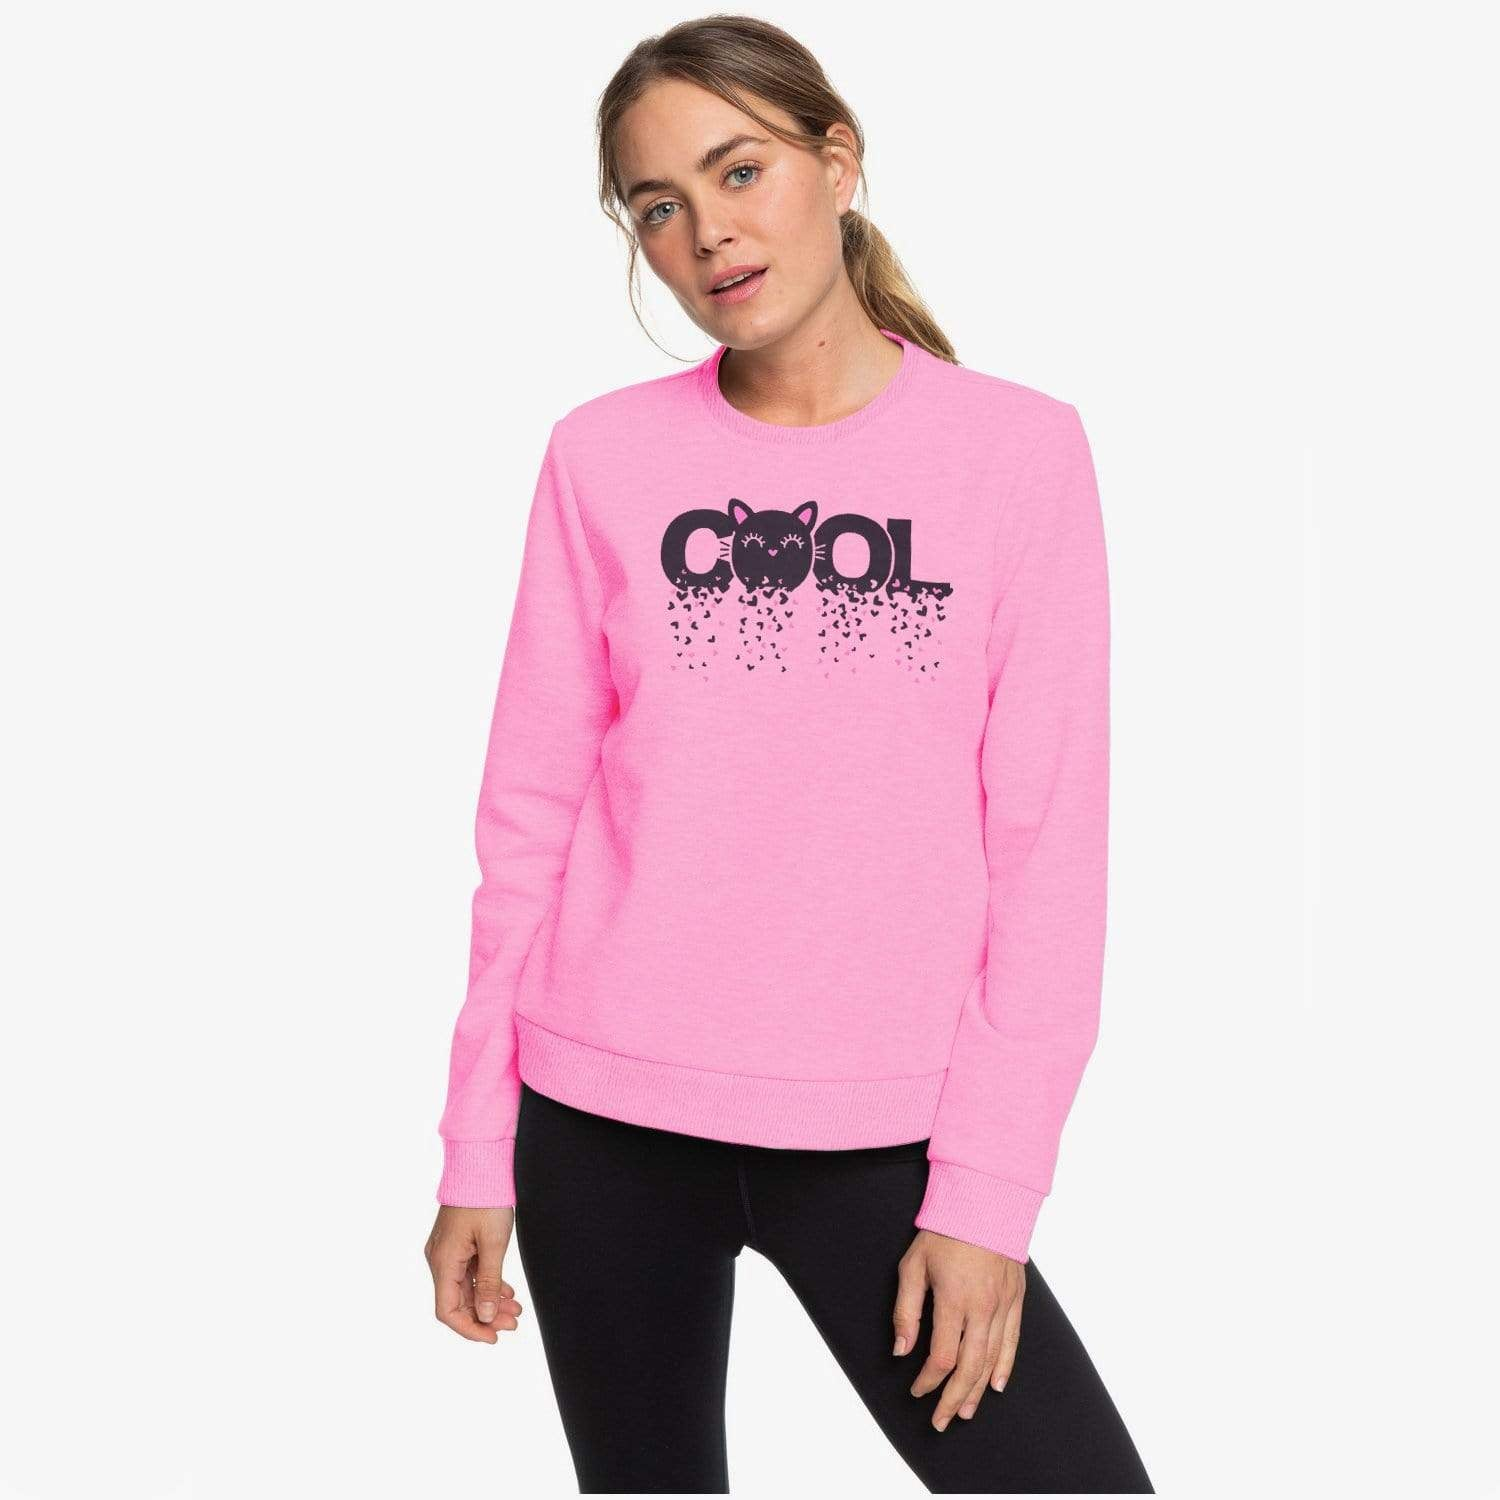 Stone Harbor Women Sweatshirt Pink / S-10 Women's STONE HARBOR Cool Cat SWEAT SHIRT